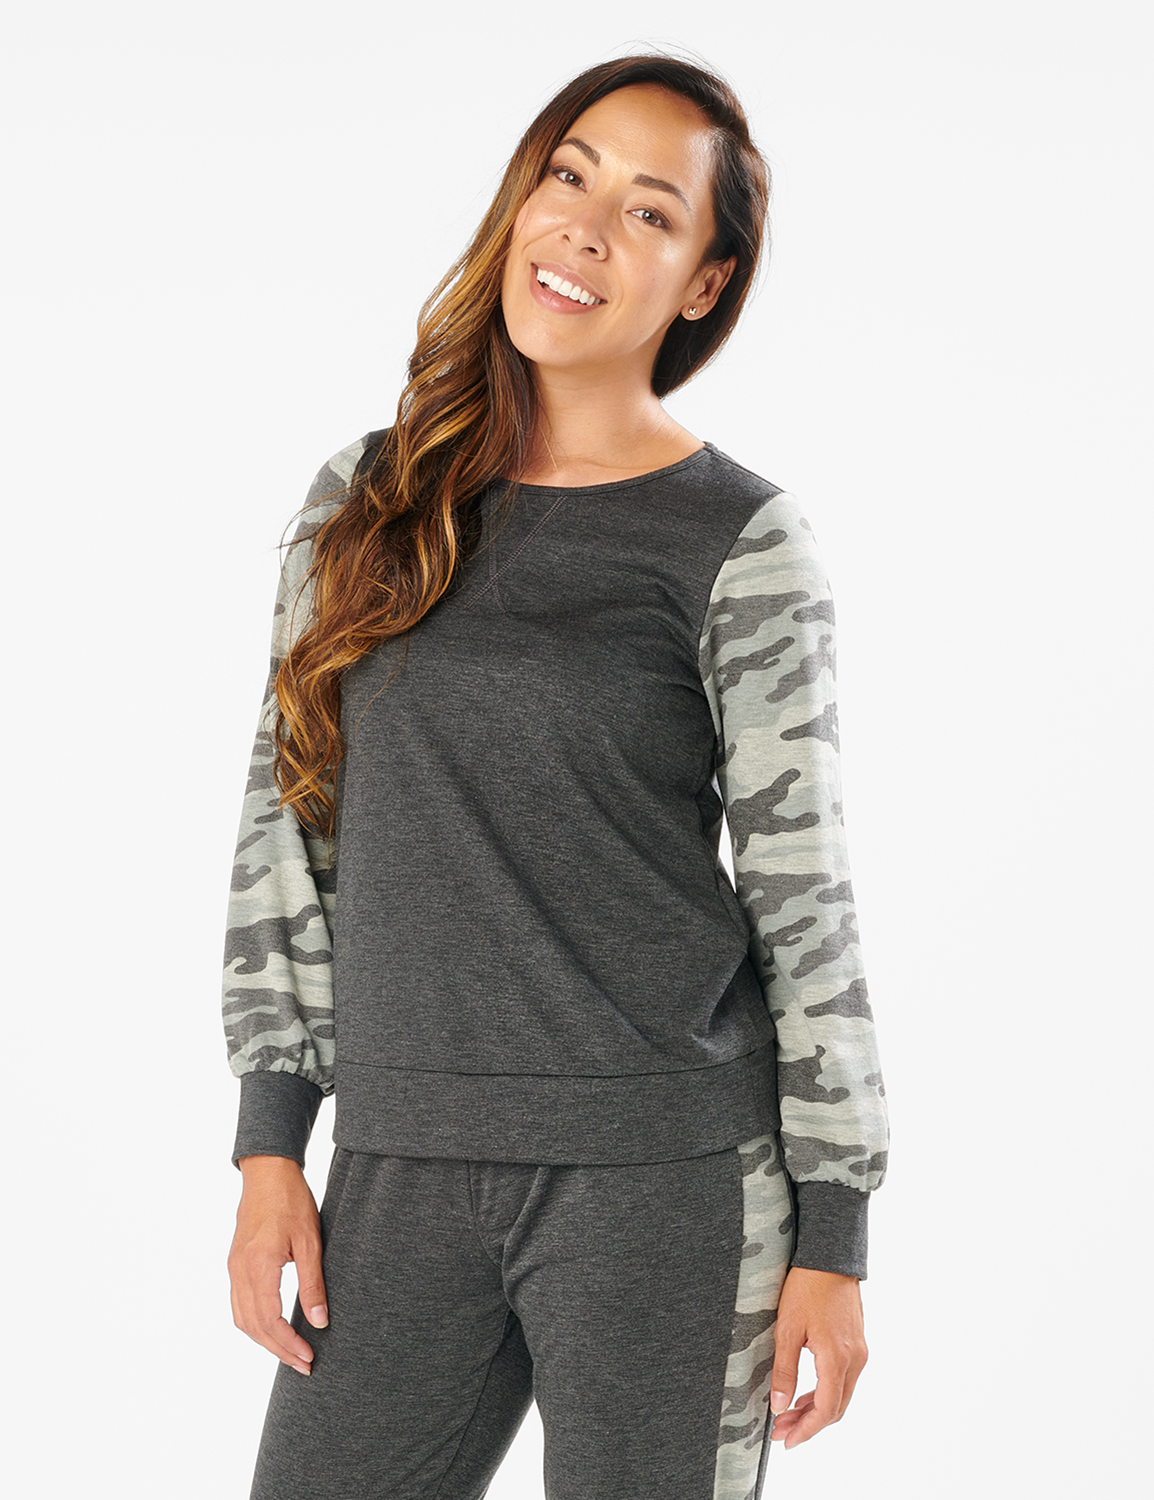 Camouflage Mixed Print Knit Top - Misses -Charcoal - Front